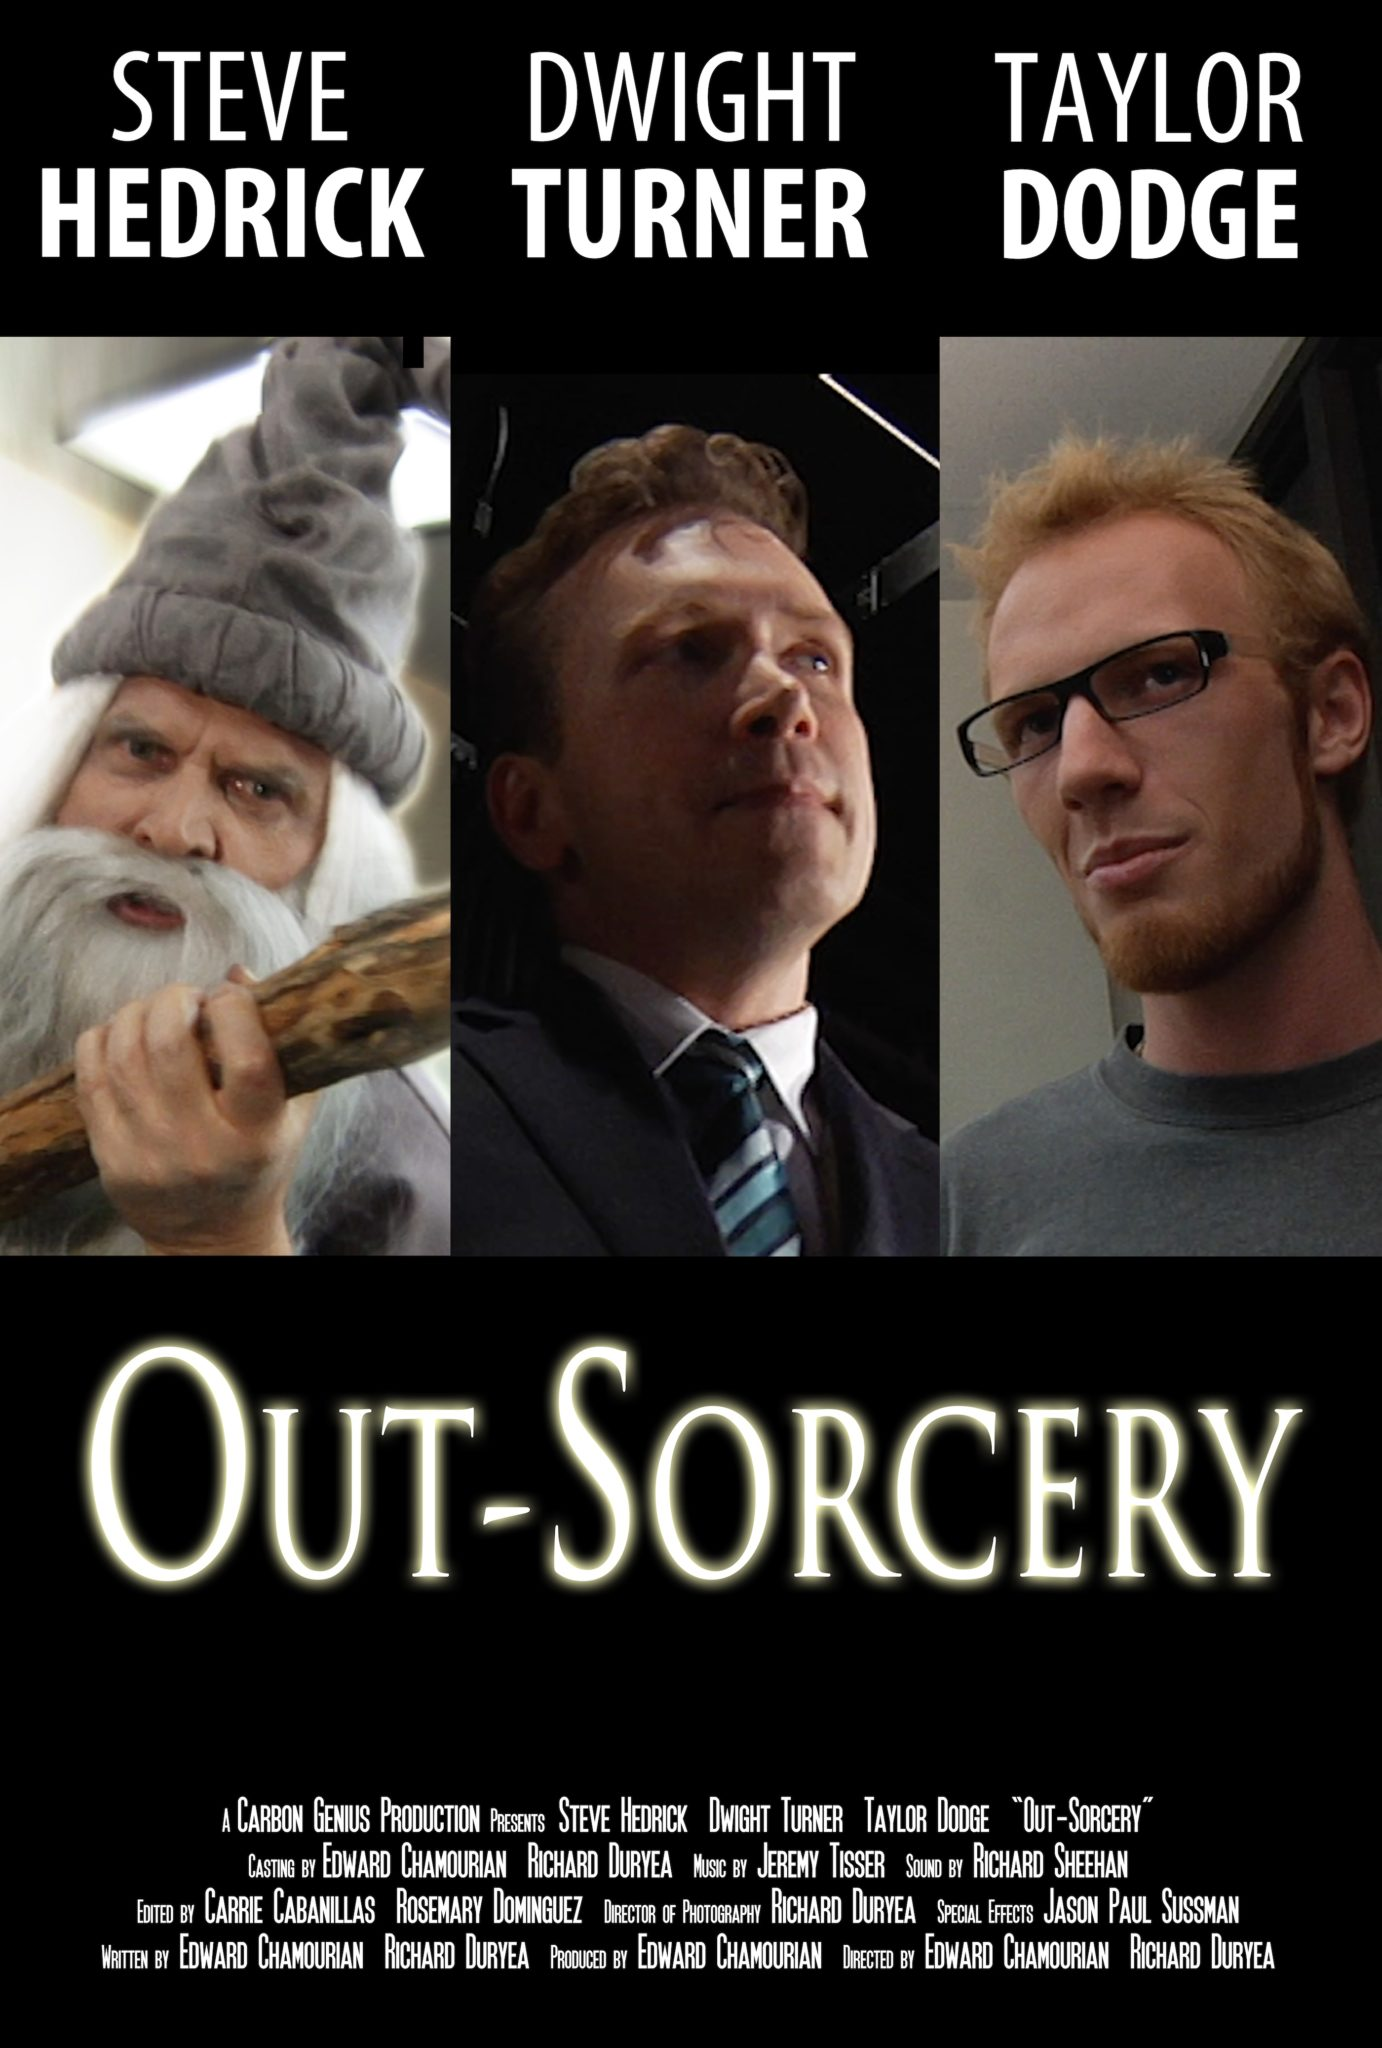 Out-Sorcery